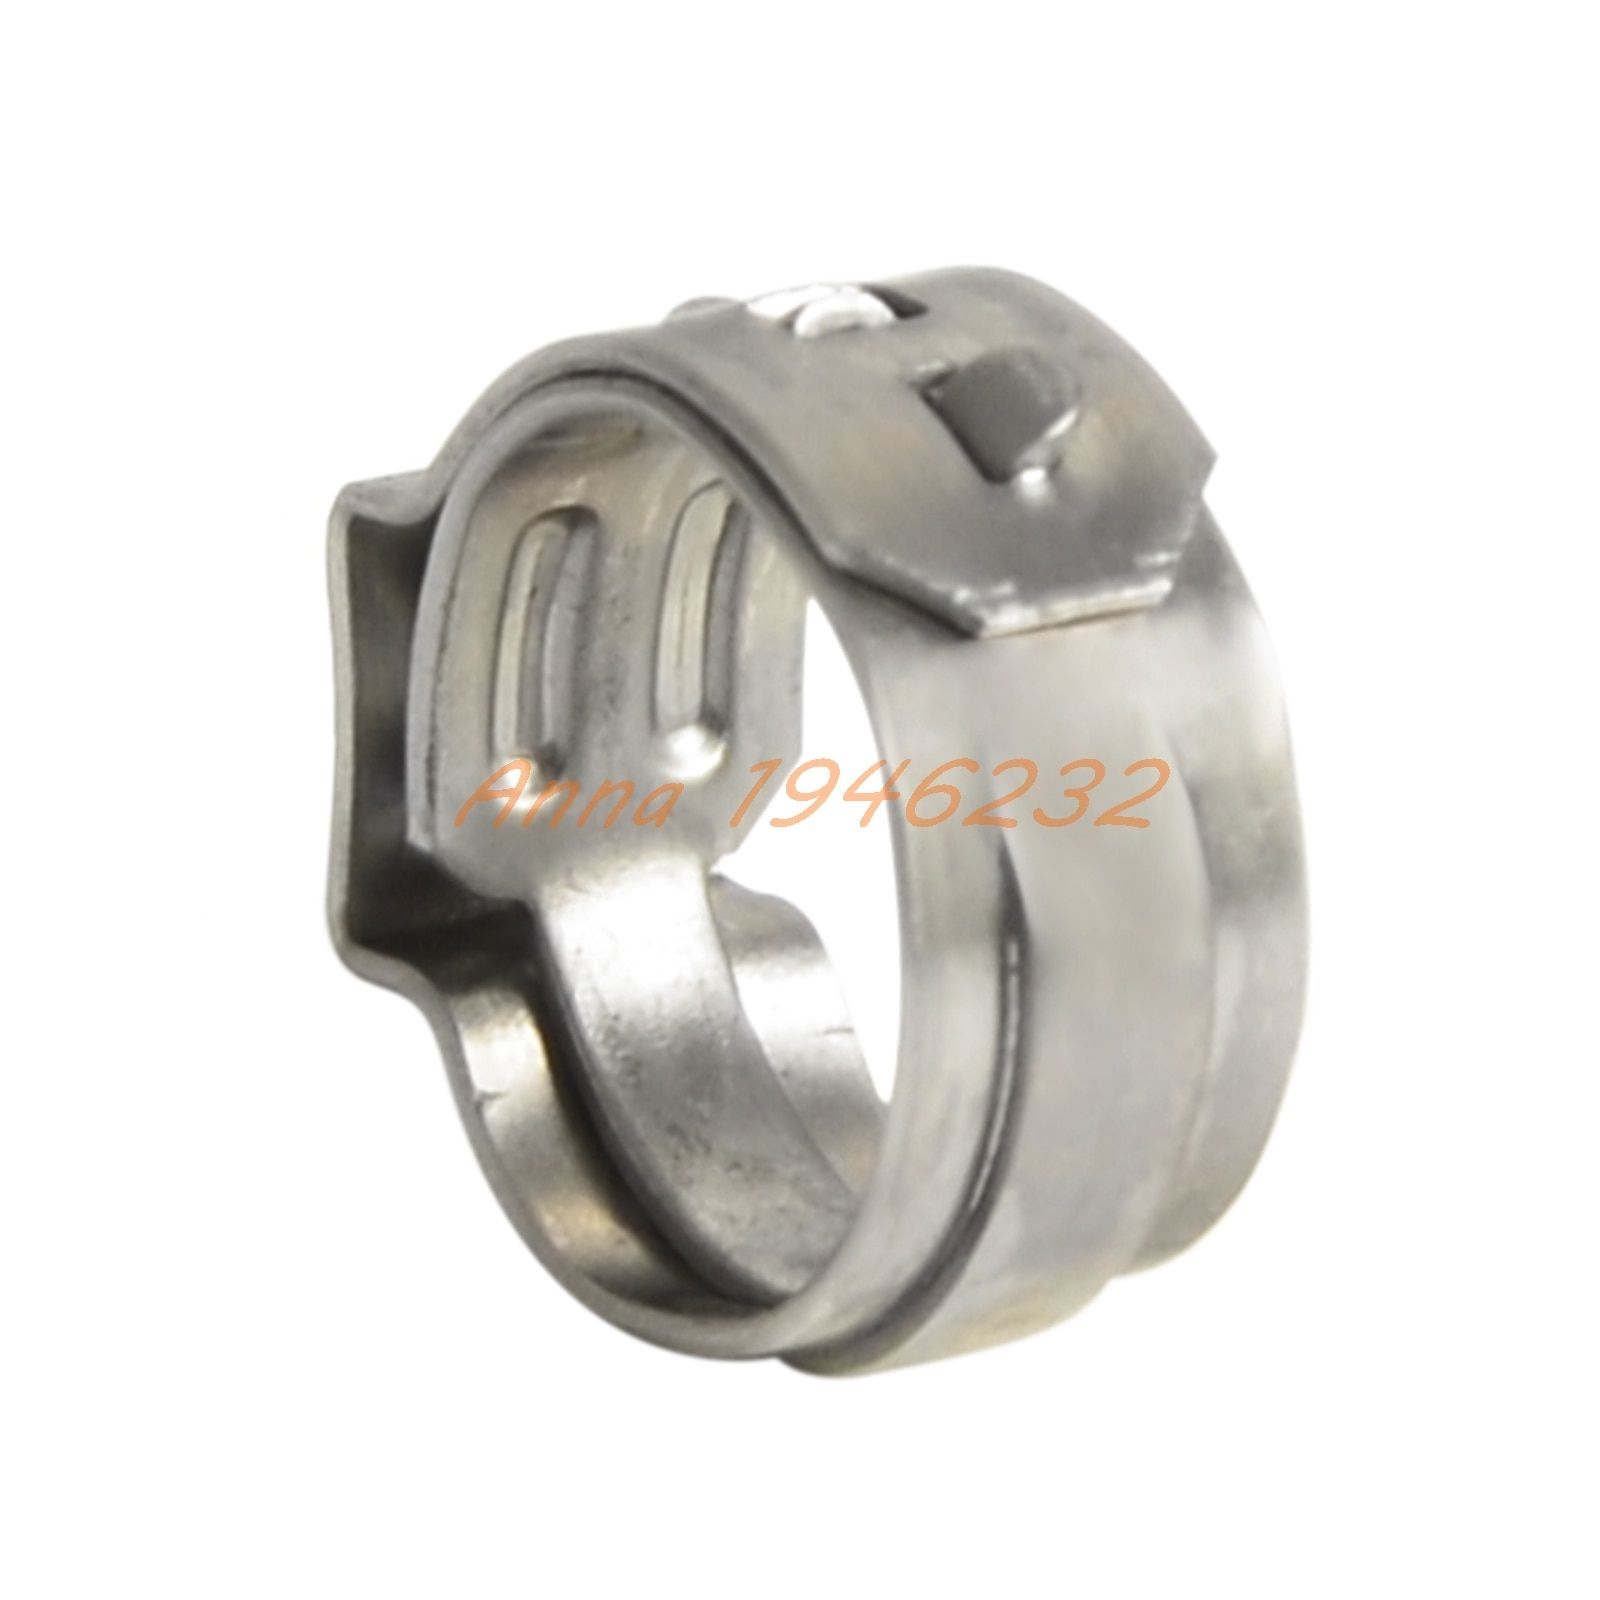 "Stainless Steel Hose Pipe Clamp Cinch Ring Crimp Pinch Fitting For 3/8"" PEX Tubing"